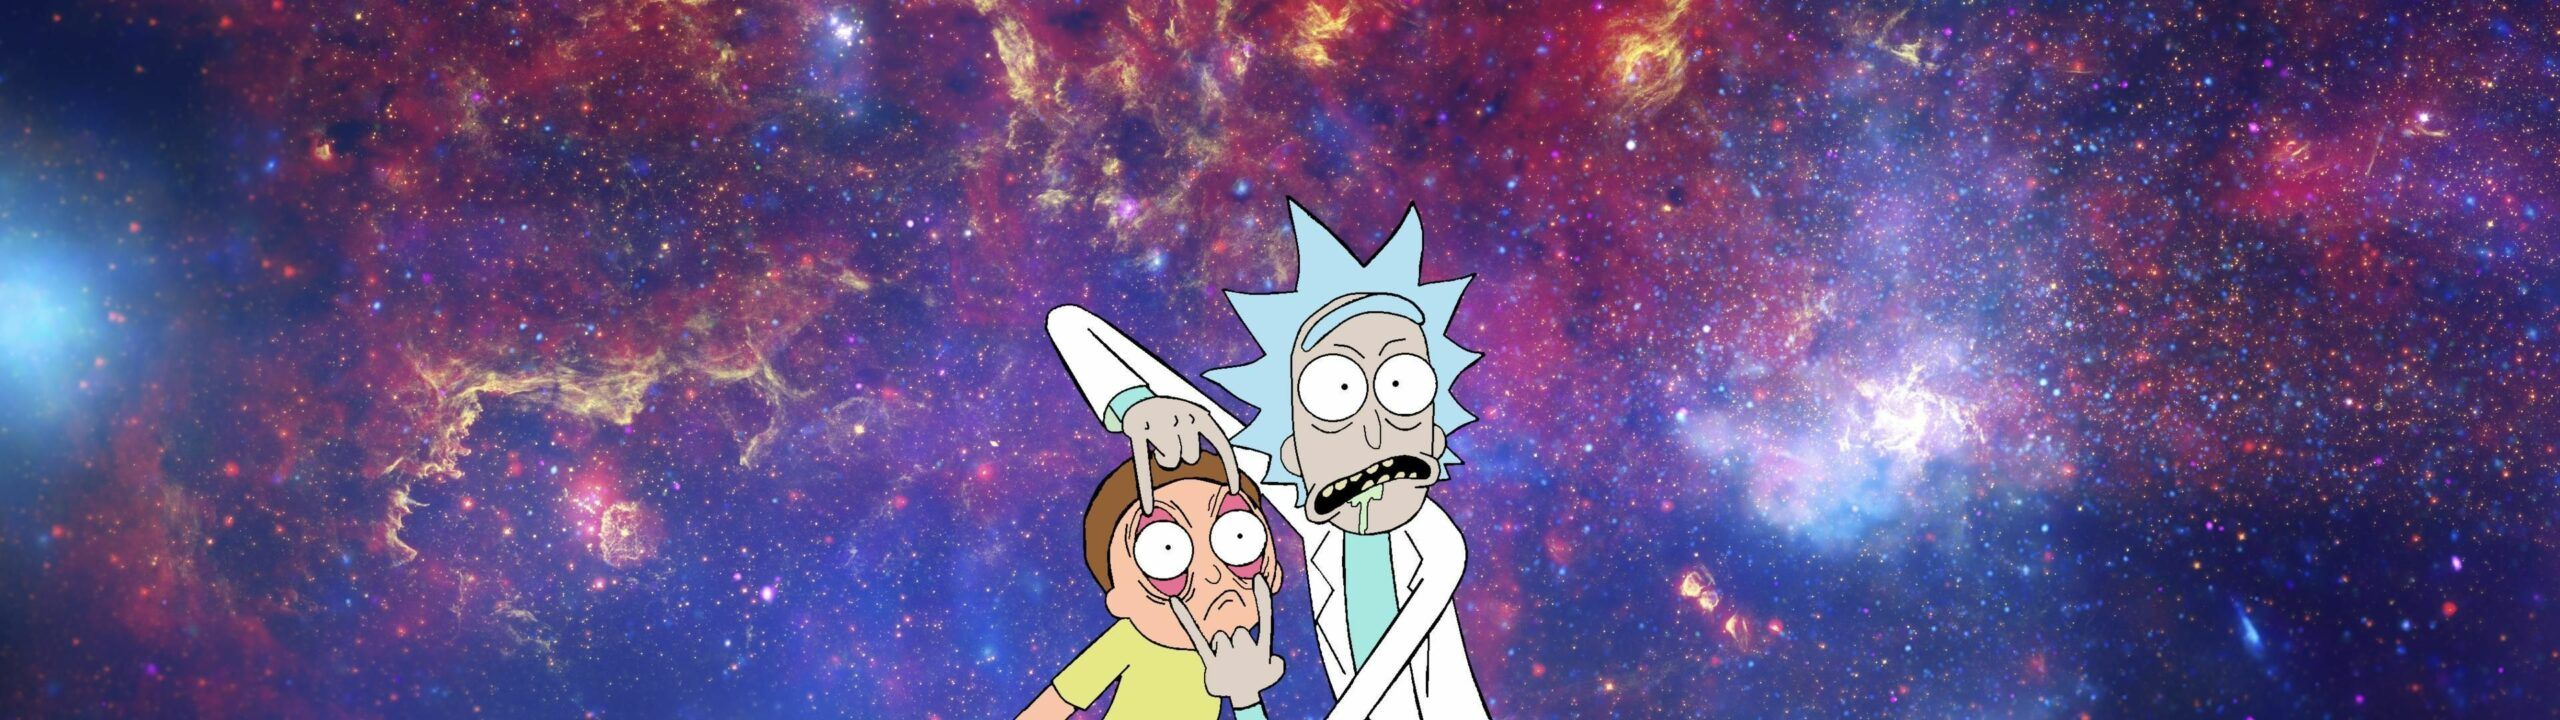 Rick And Morty Dual Monitor Wallpaper In 2020 Dual Monitor